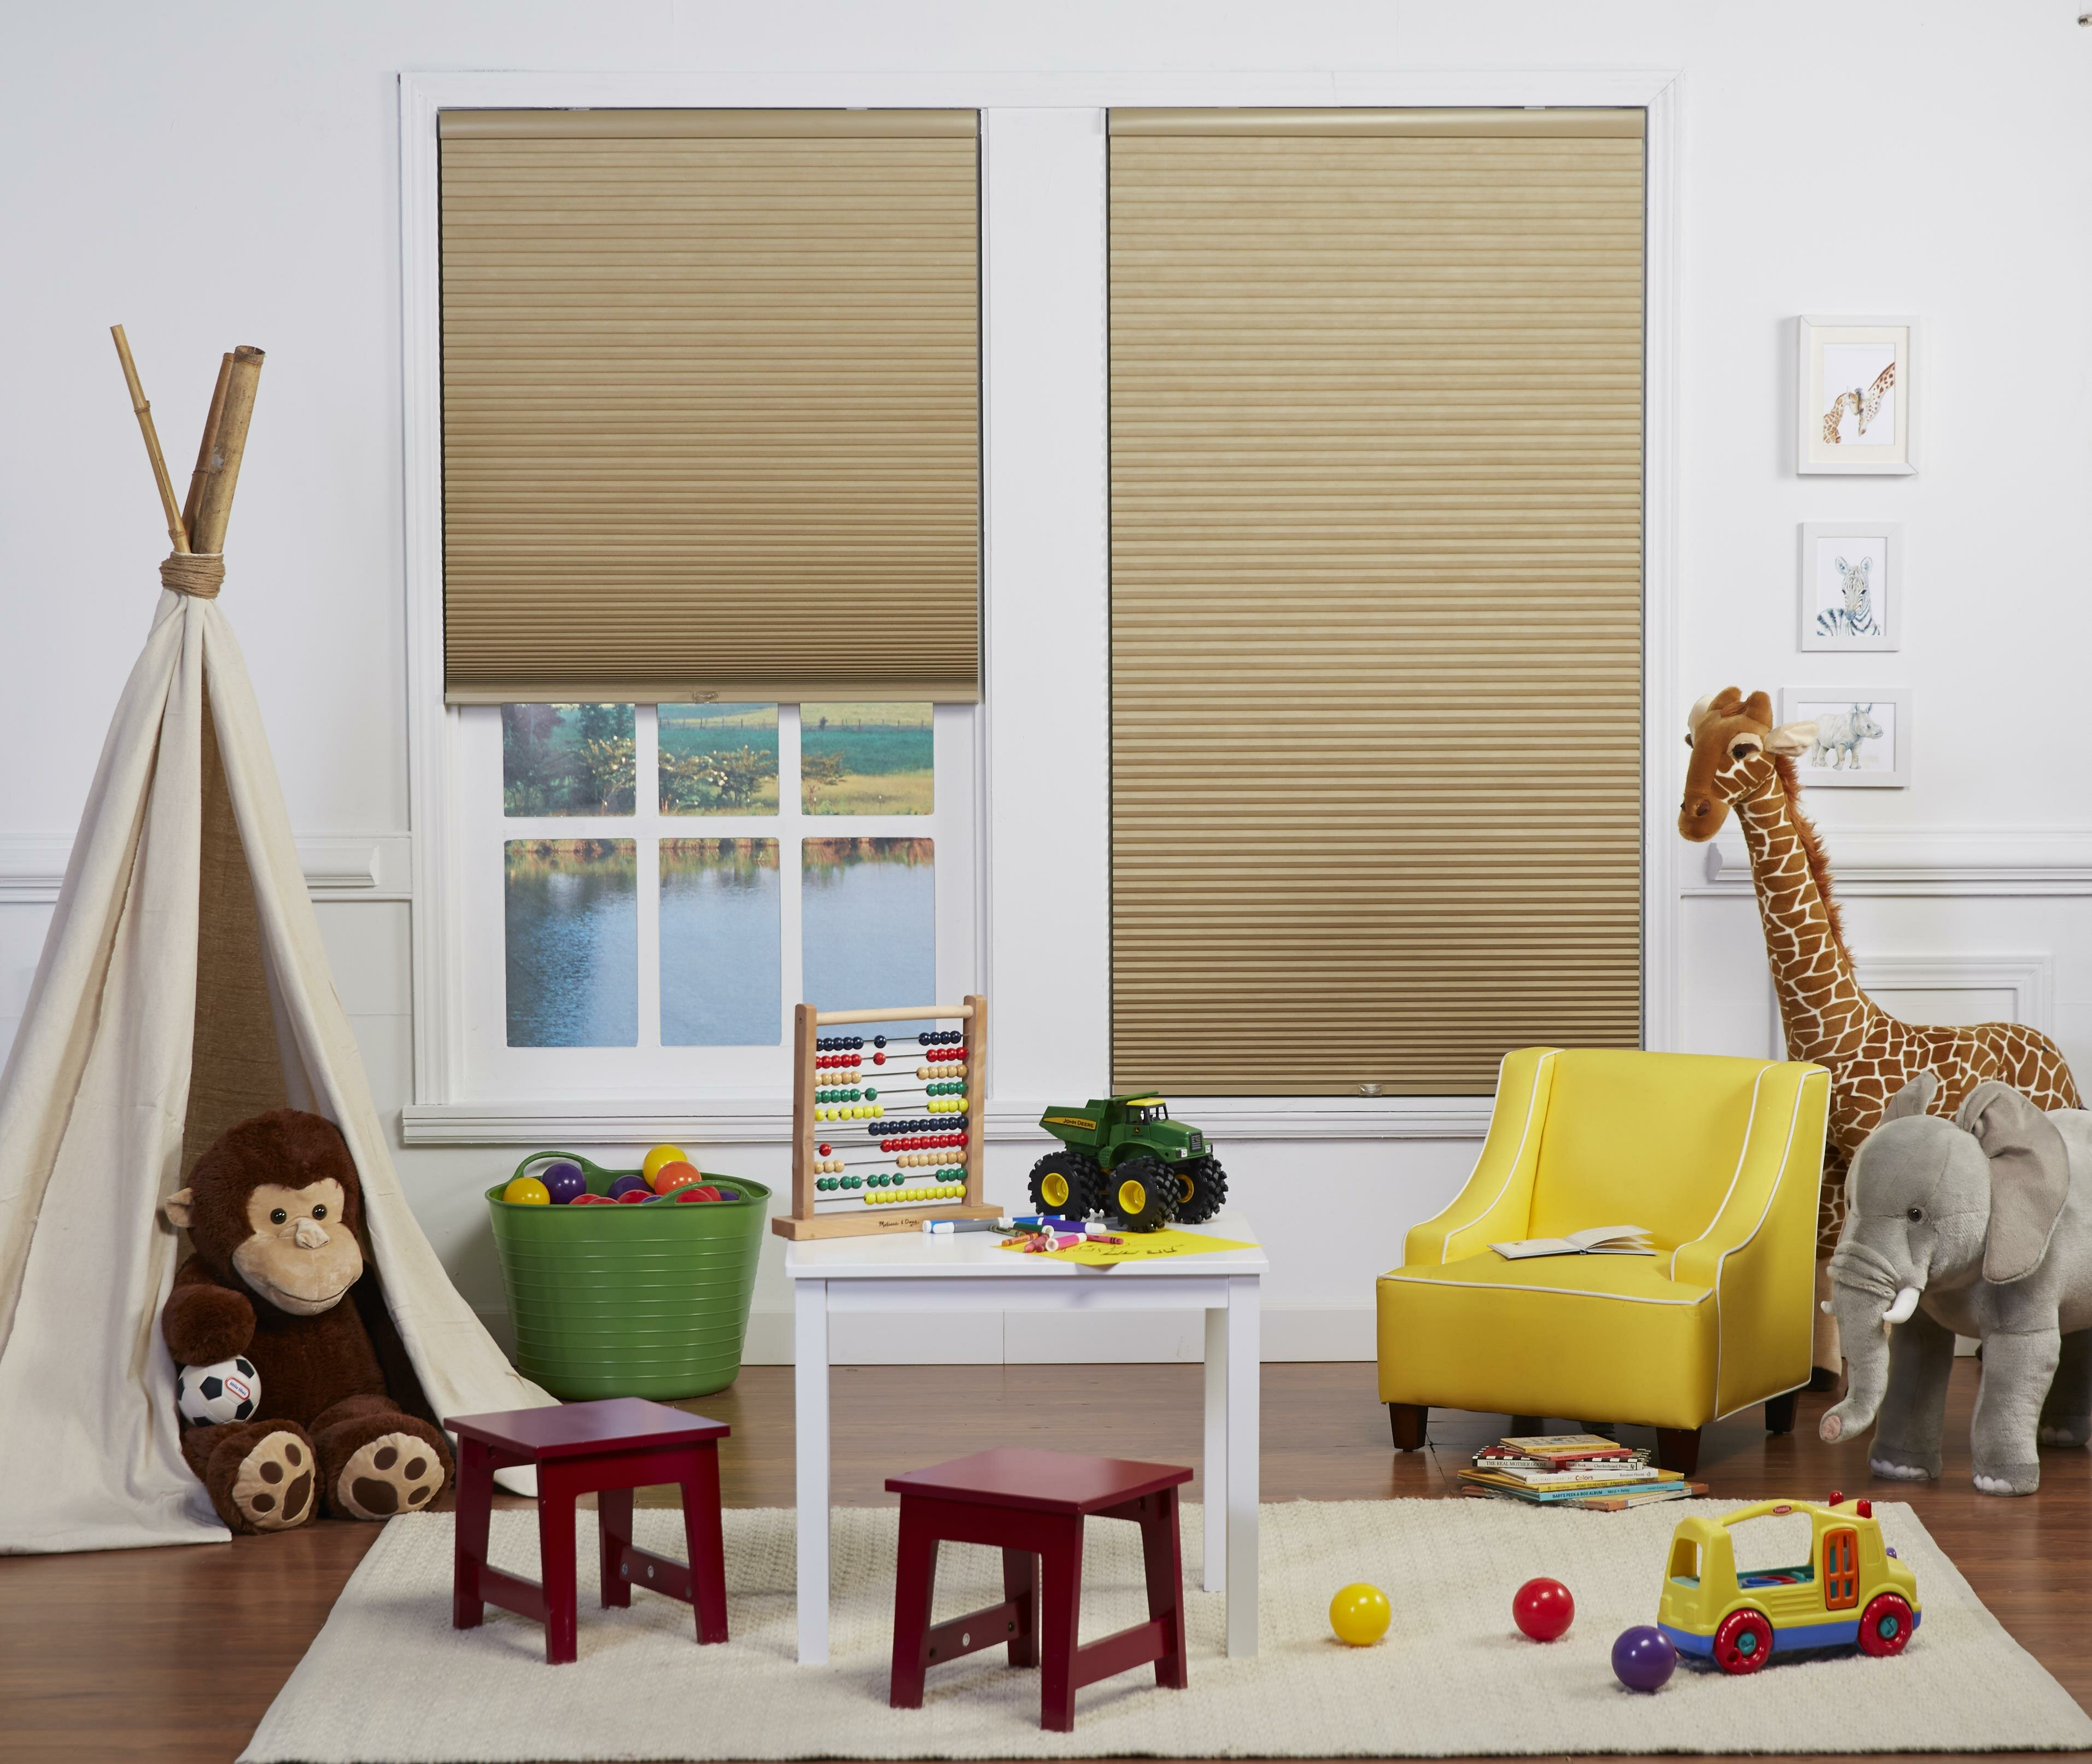 DEZ Furnishings QCLN280720 Cordless Light Filtering Cellular Shade 28W x 72H Inches Linen